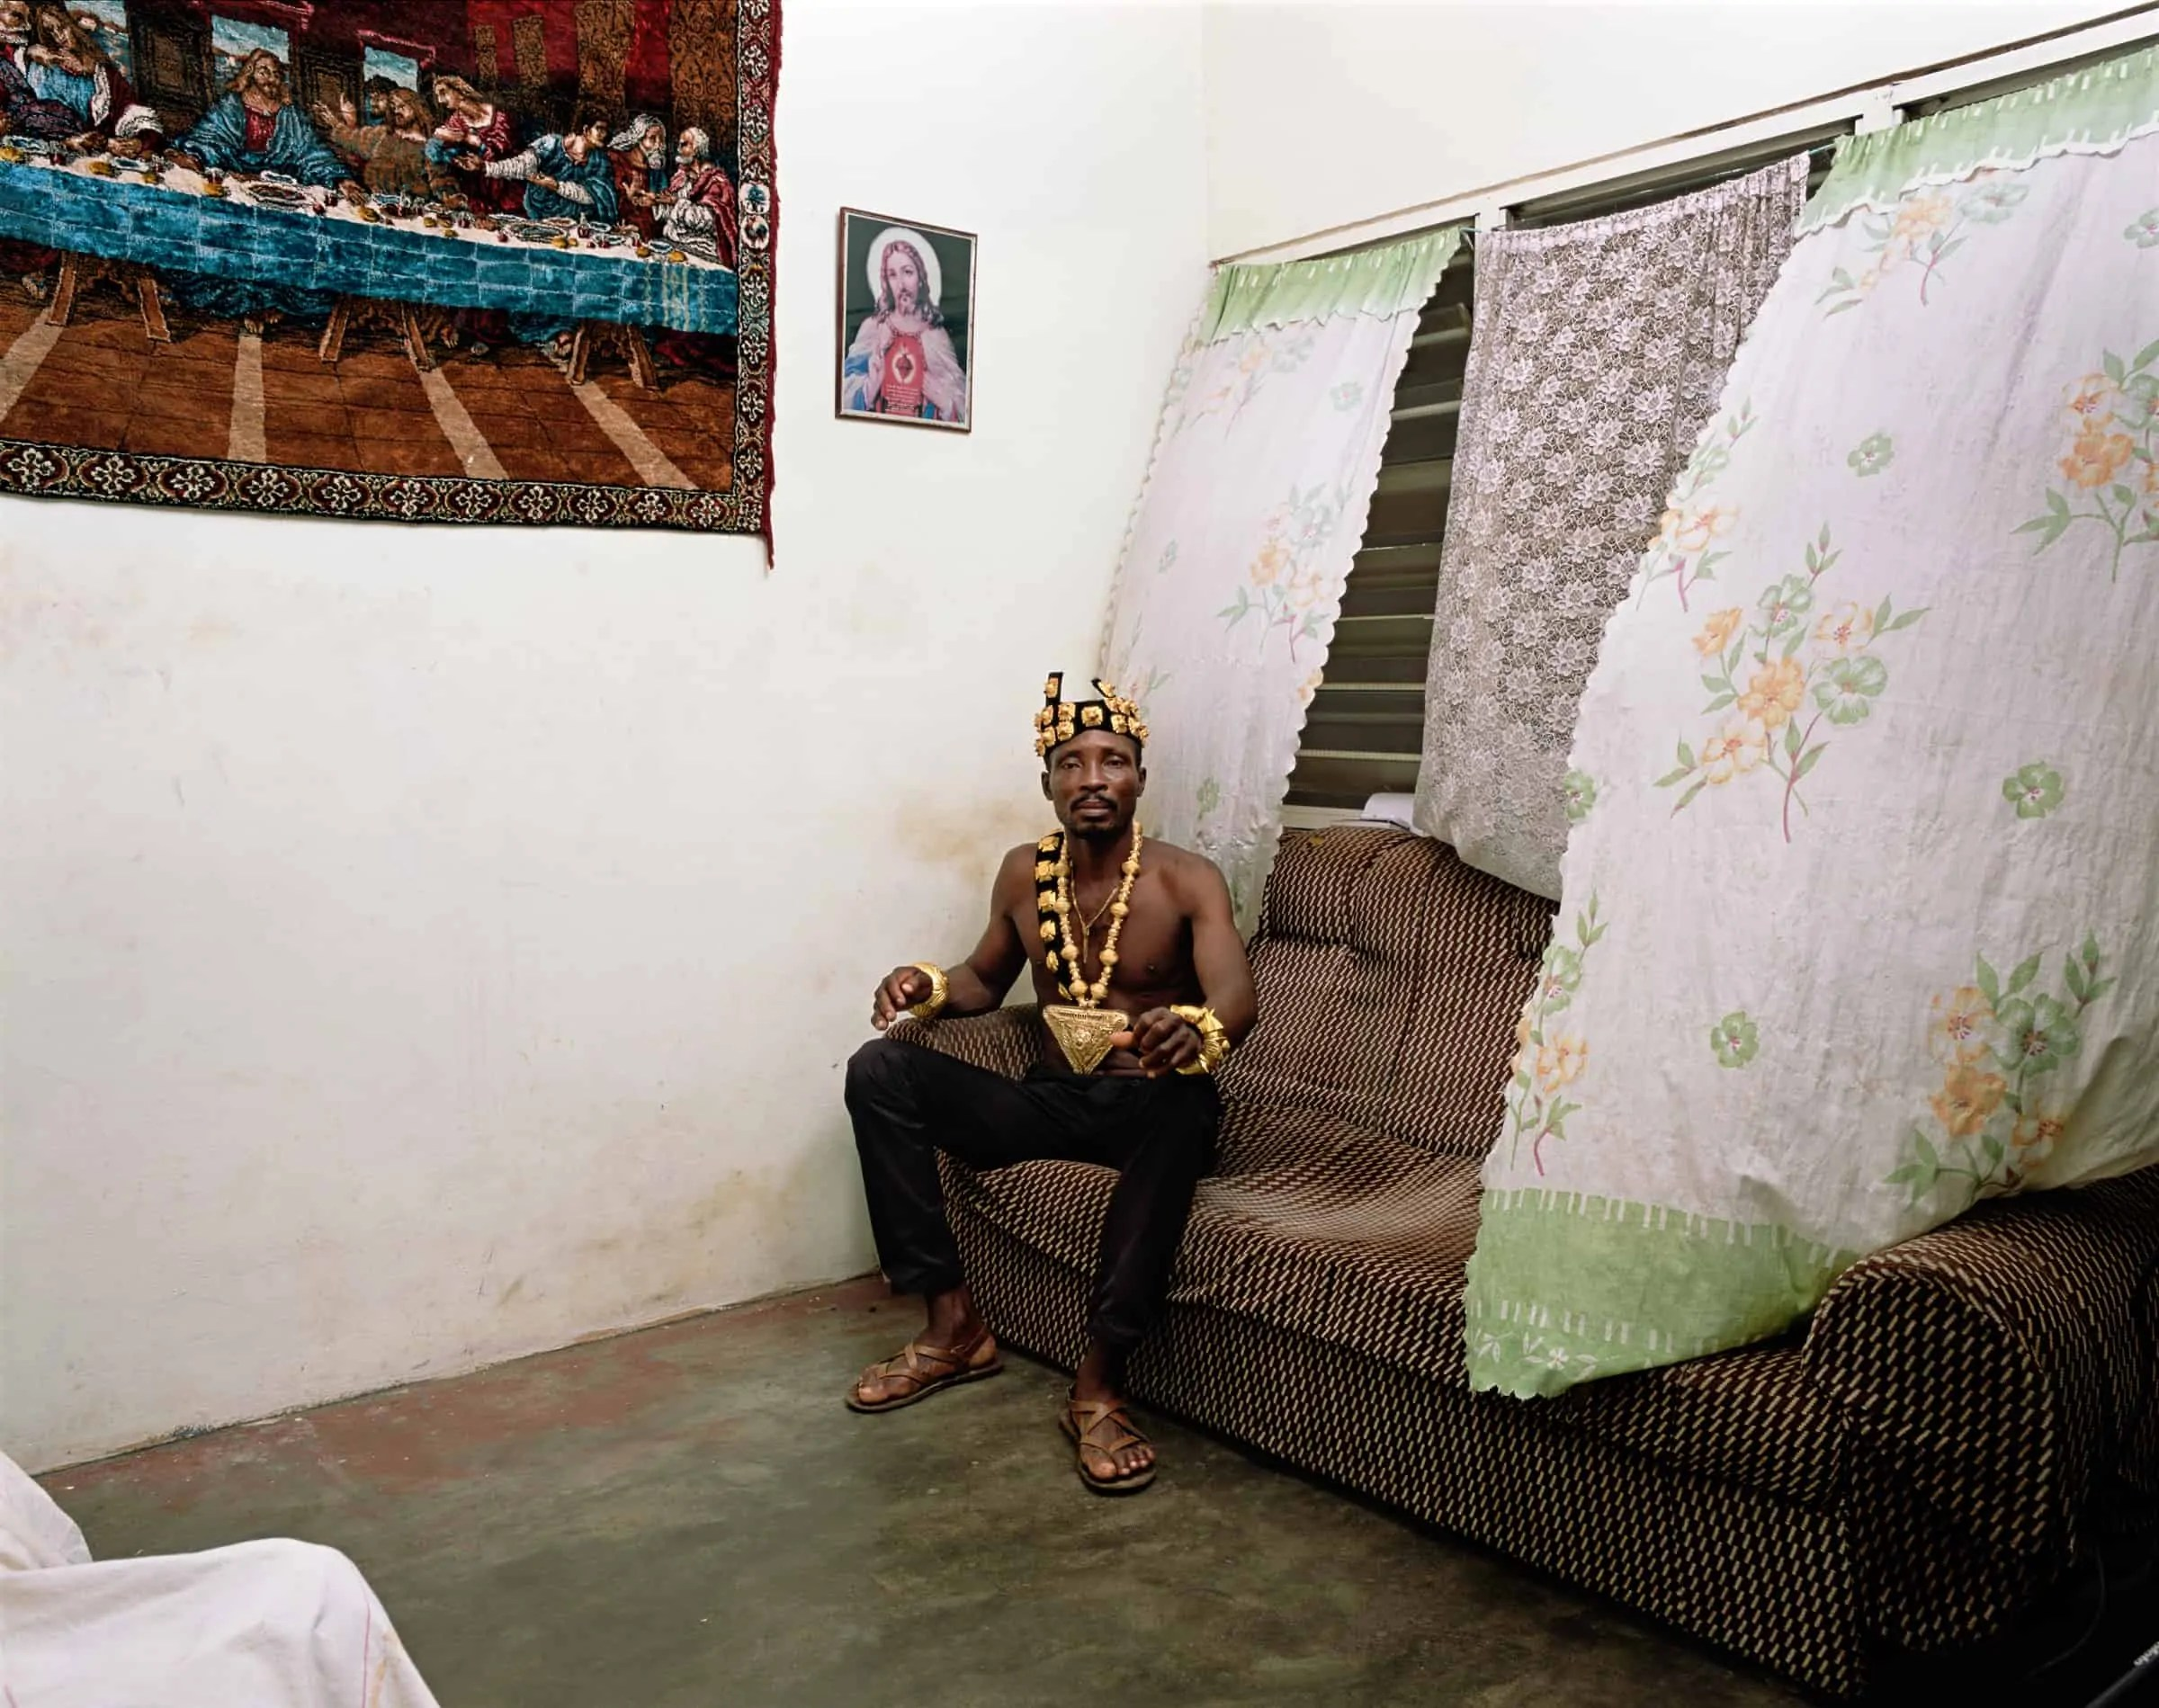 Man in a crown sits on couch photographed by Deana Lawson